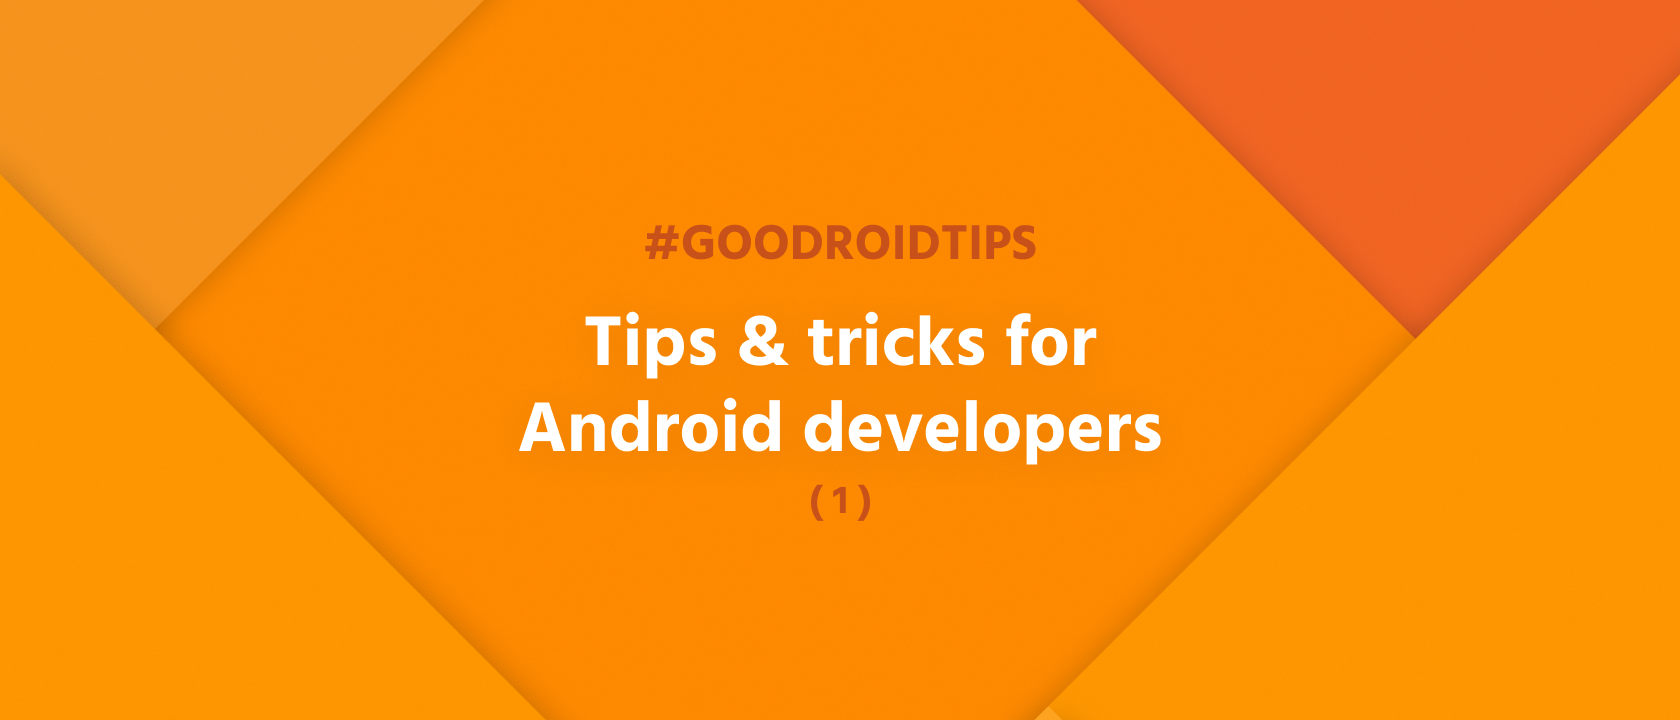 #goodroidtips I. - Tips & tricks for Android developers